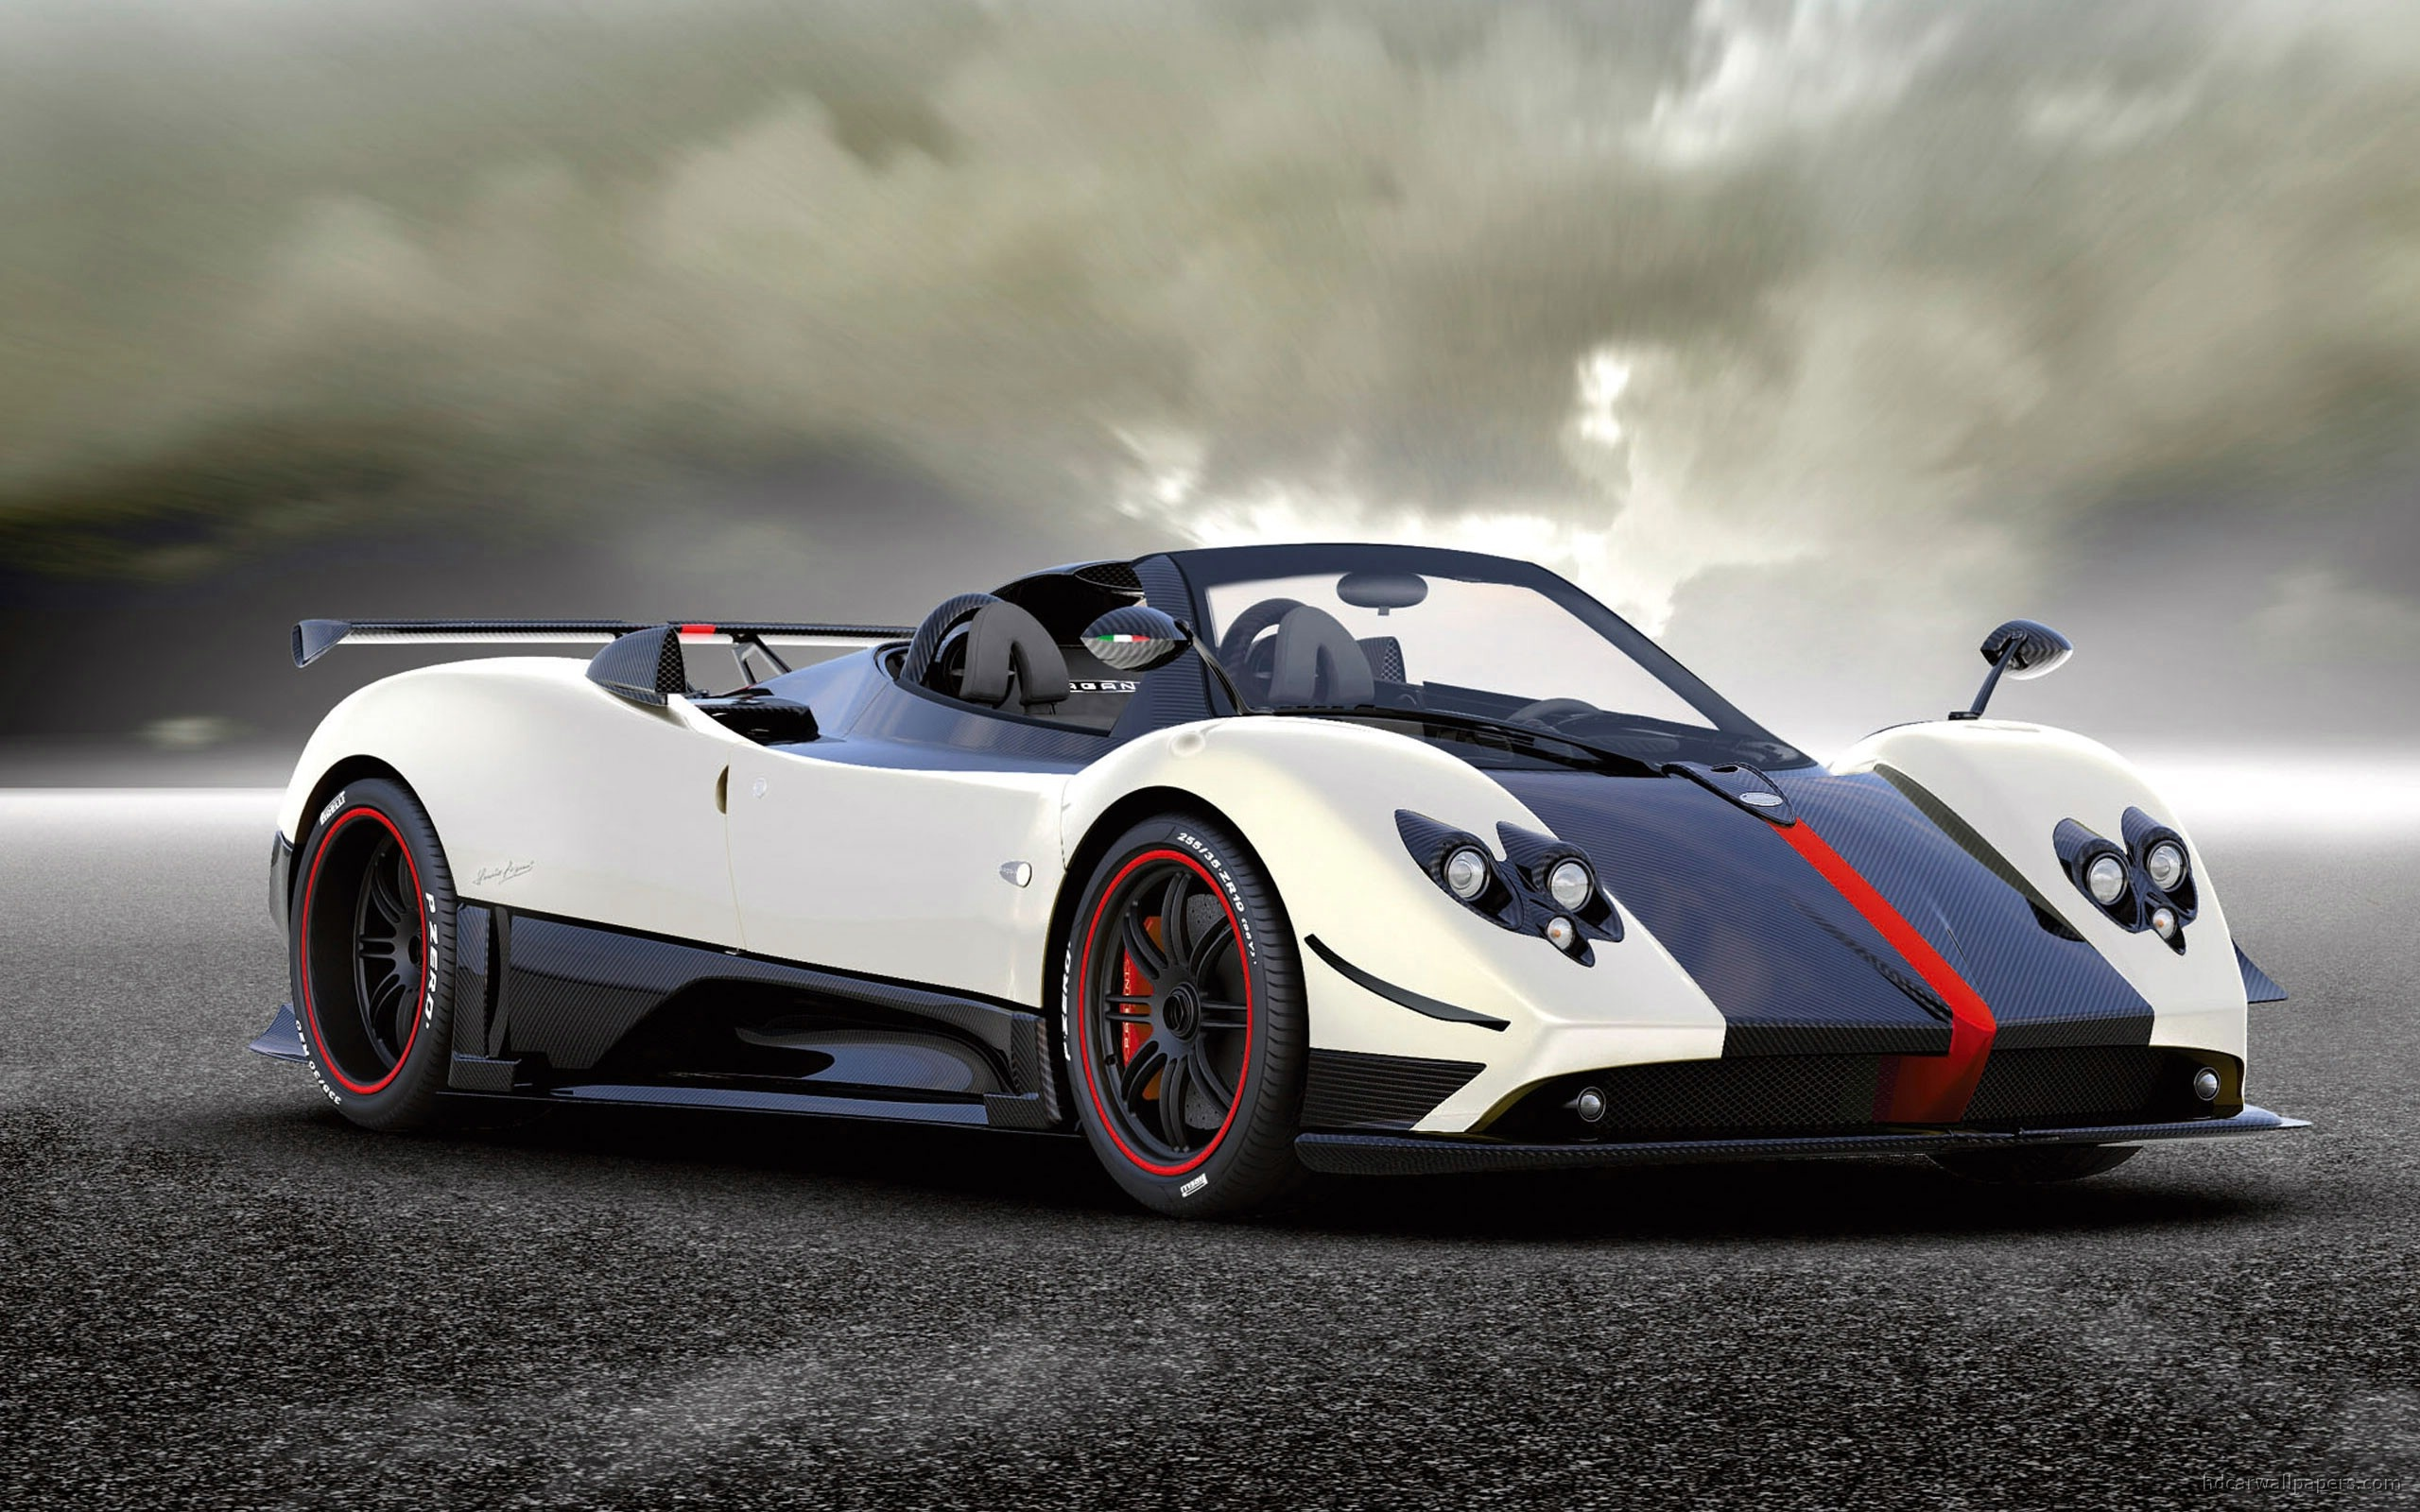 Pagani-car-wallpaper-wp421544-1